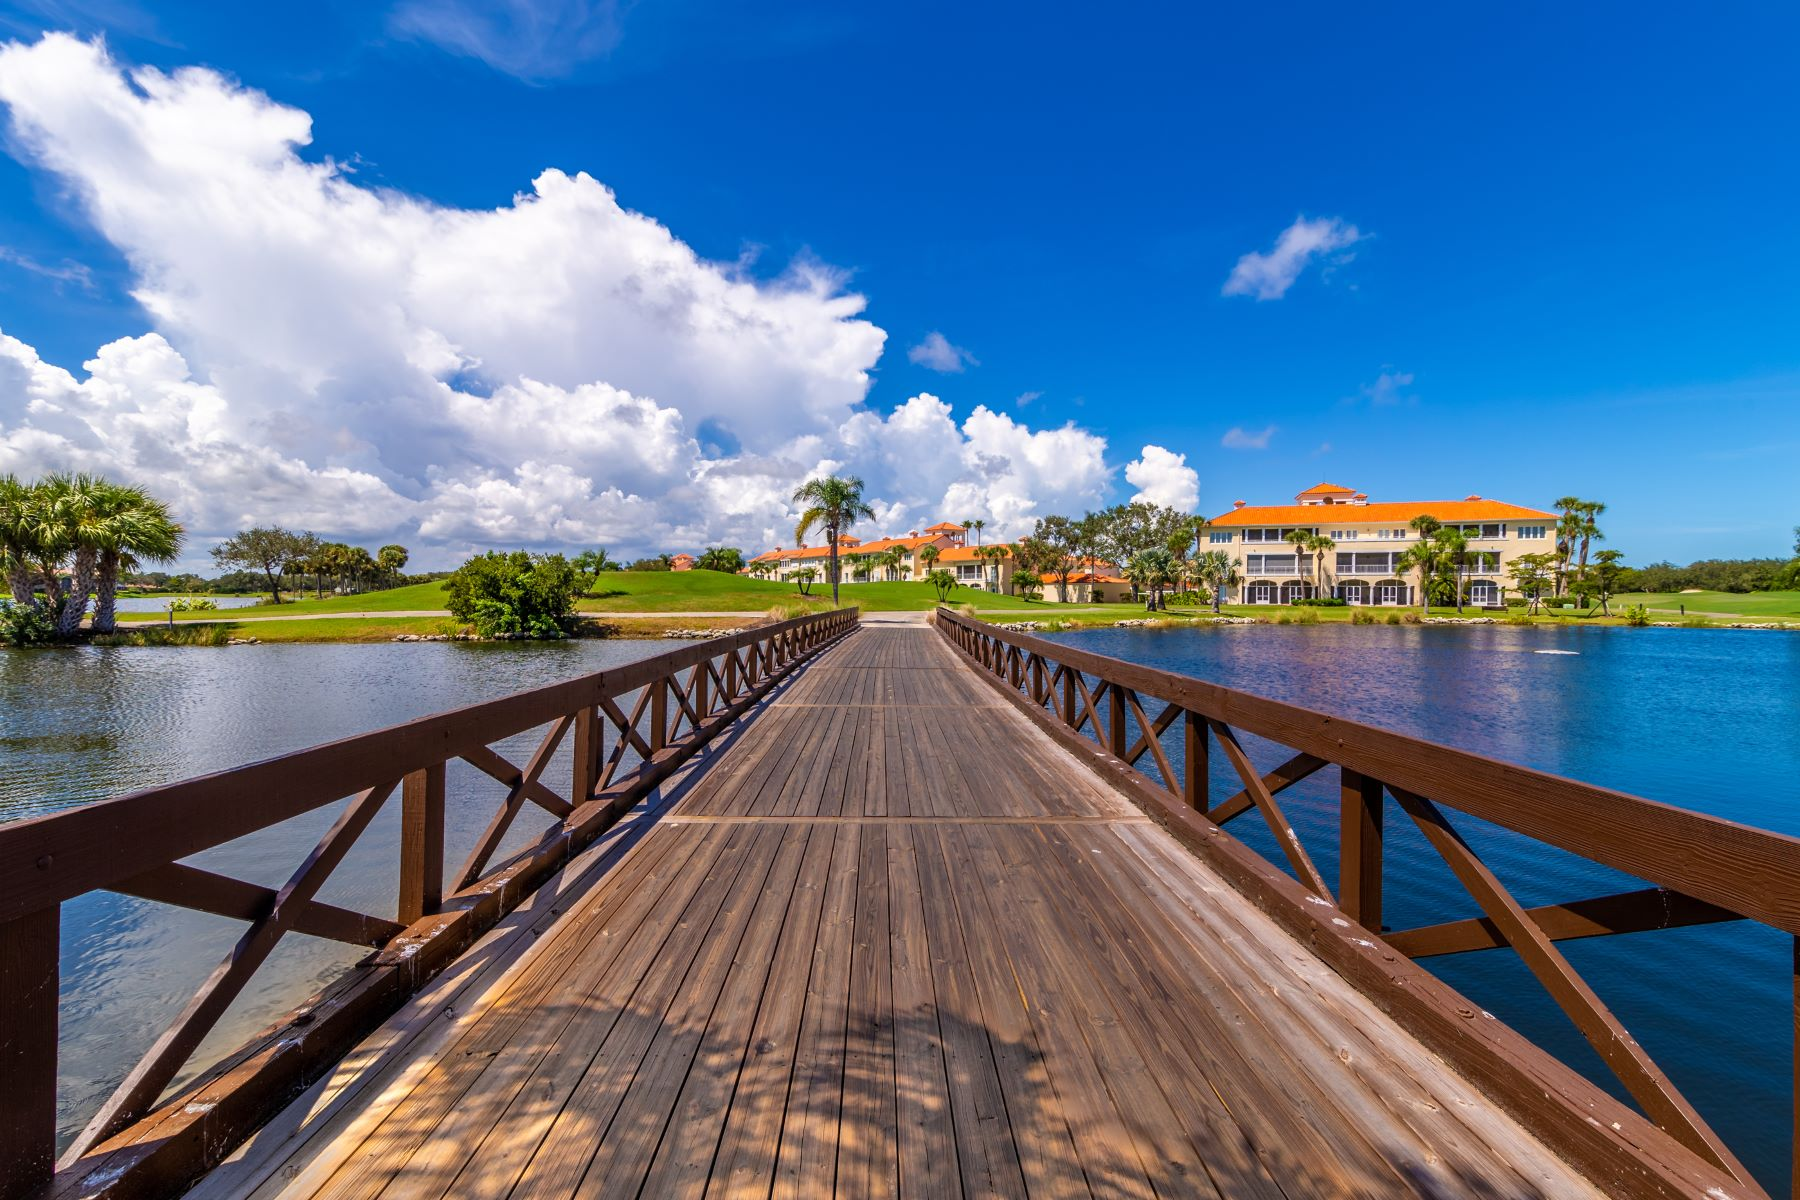 Additional photo for property listing at Direct Riverfront New Construction 4844 S Harbor Drive Vero Beach, Florida 32967 United States